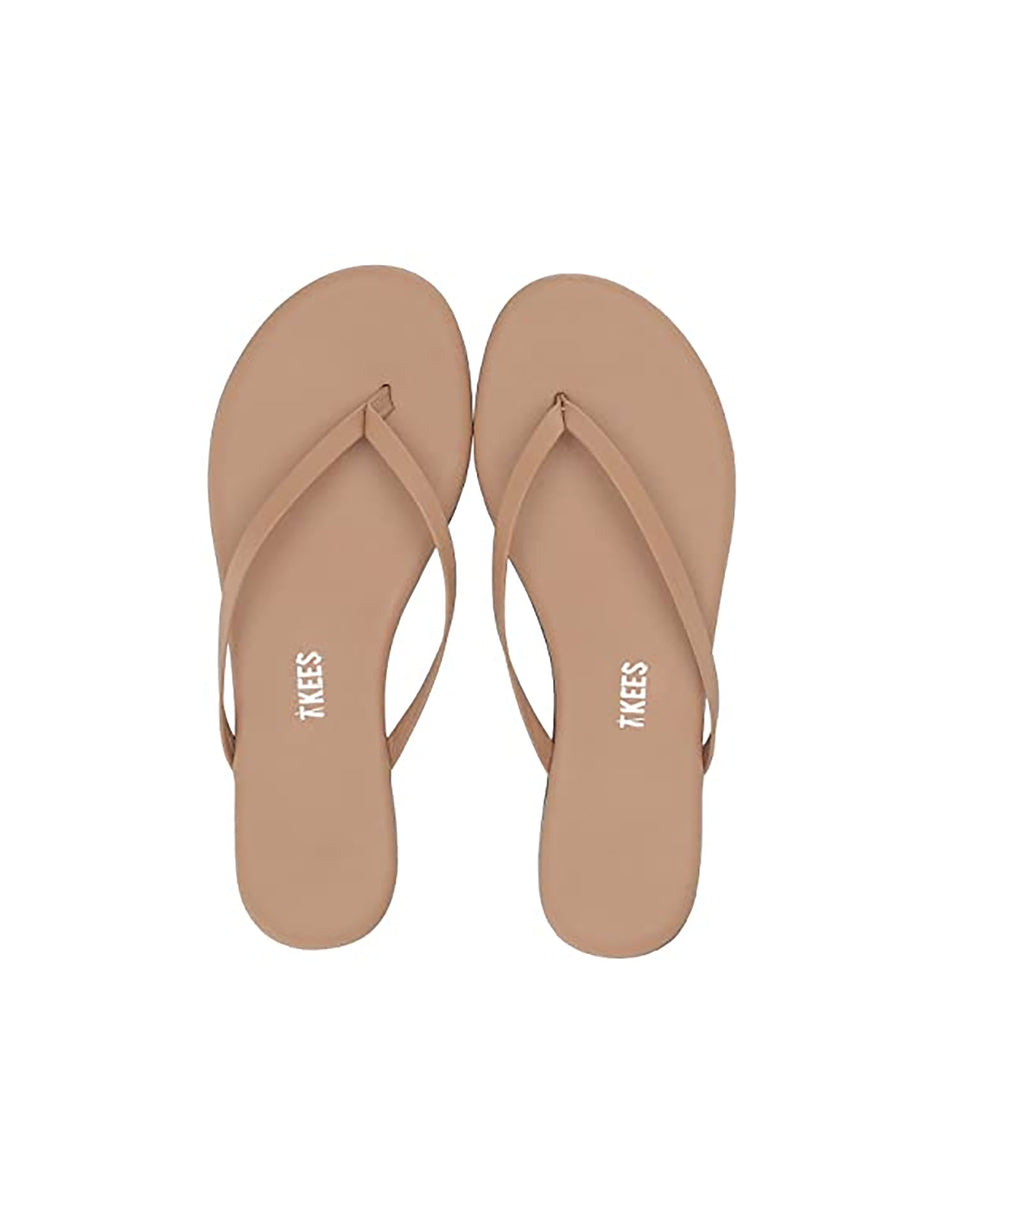 Tkees Women Flip-Flop Cocoa Butter